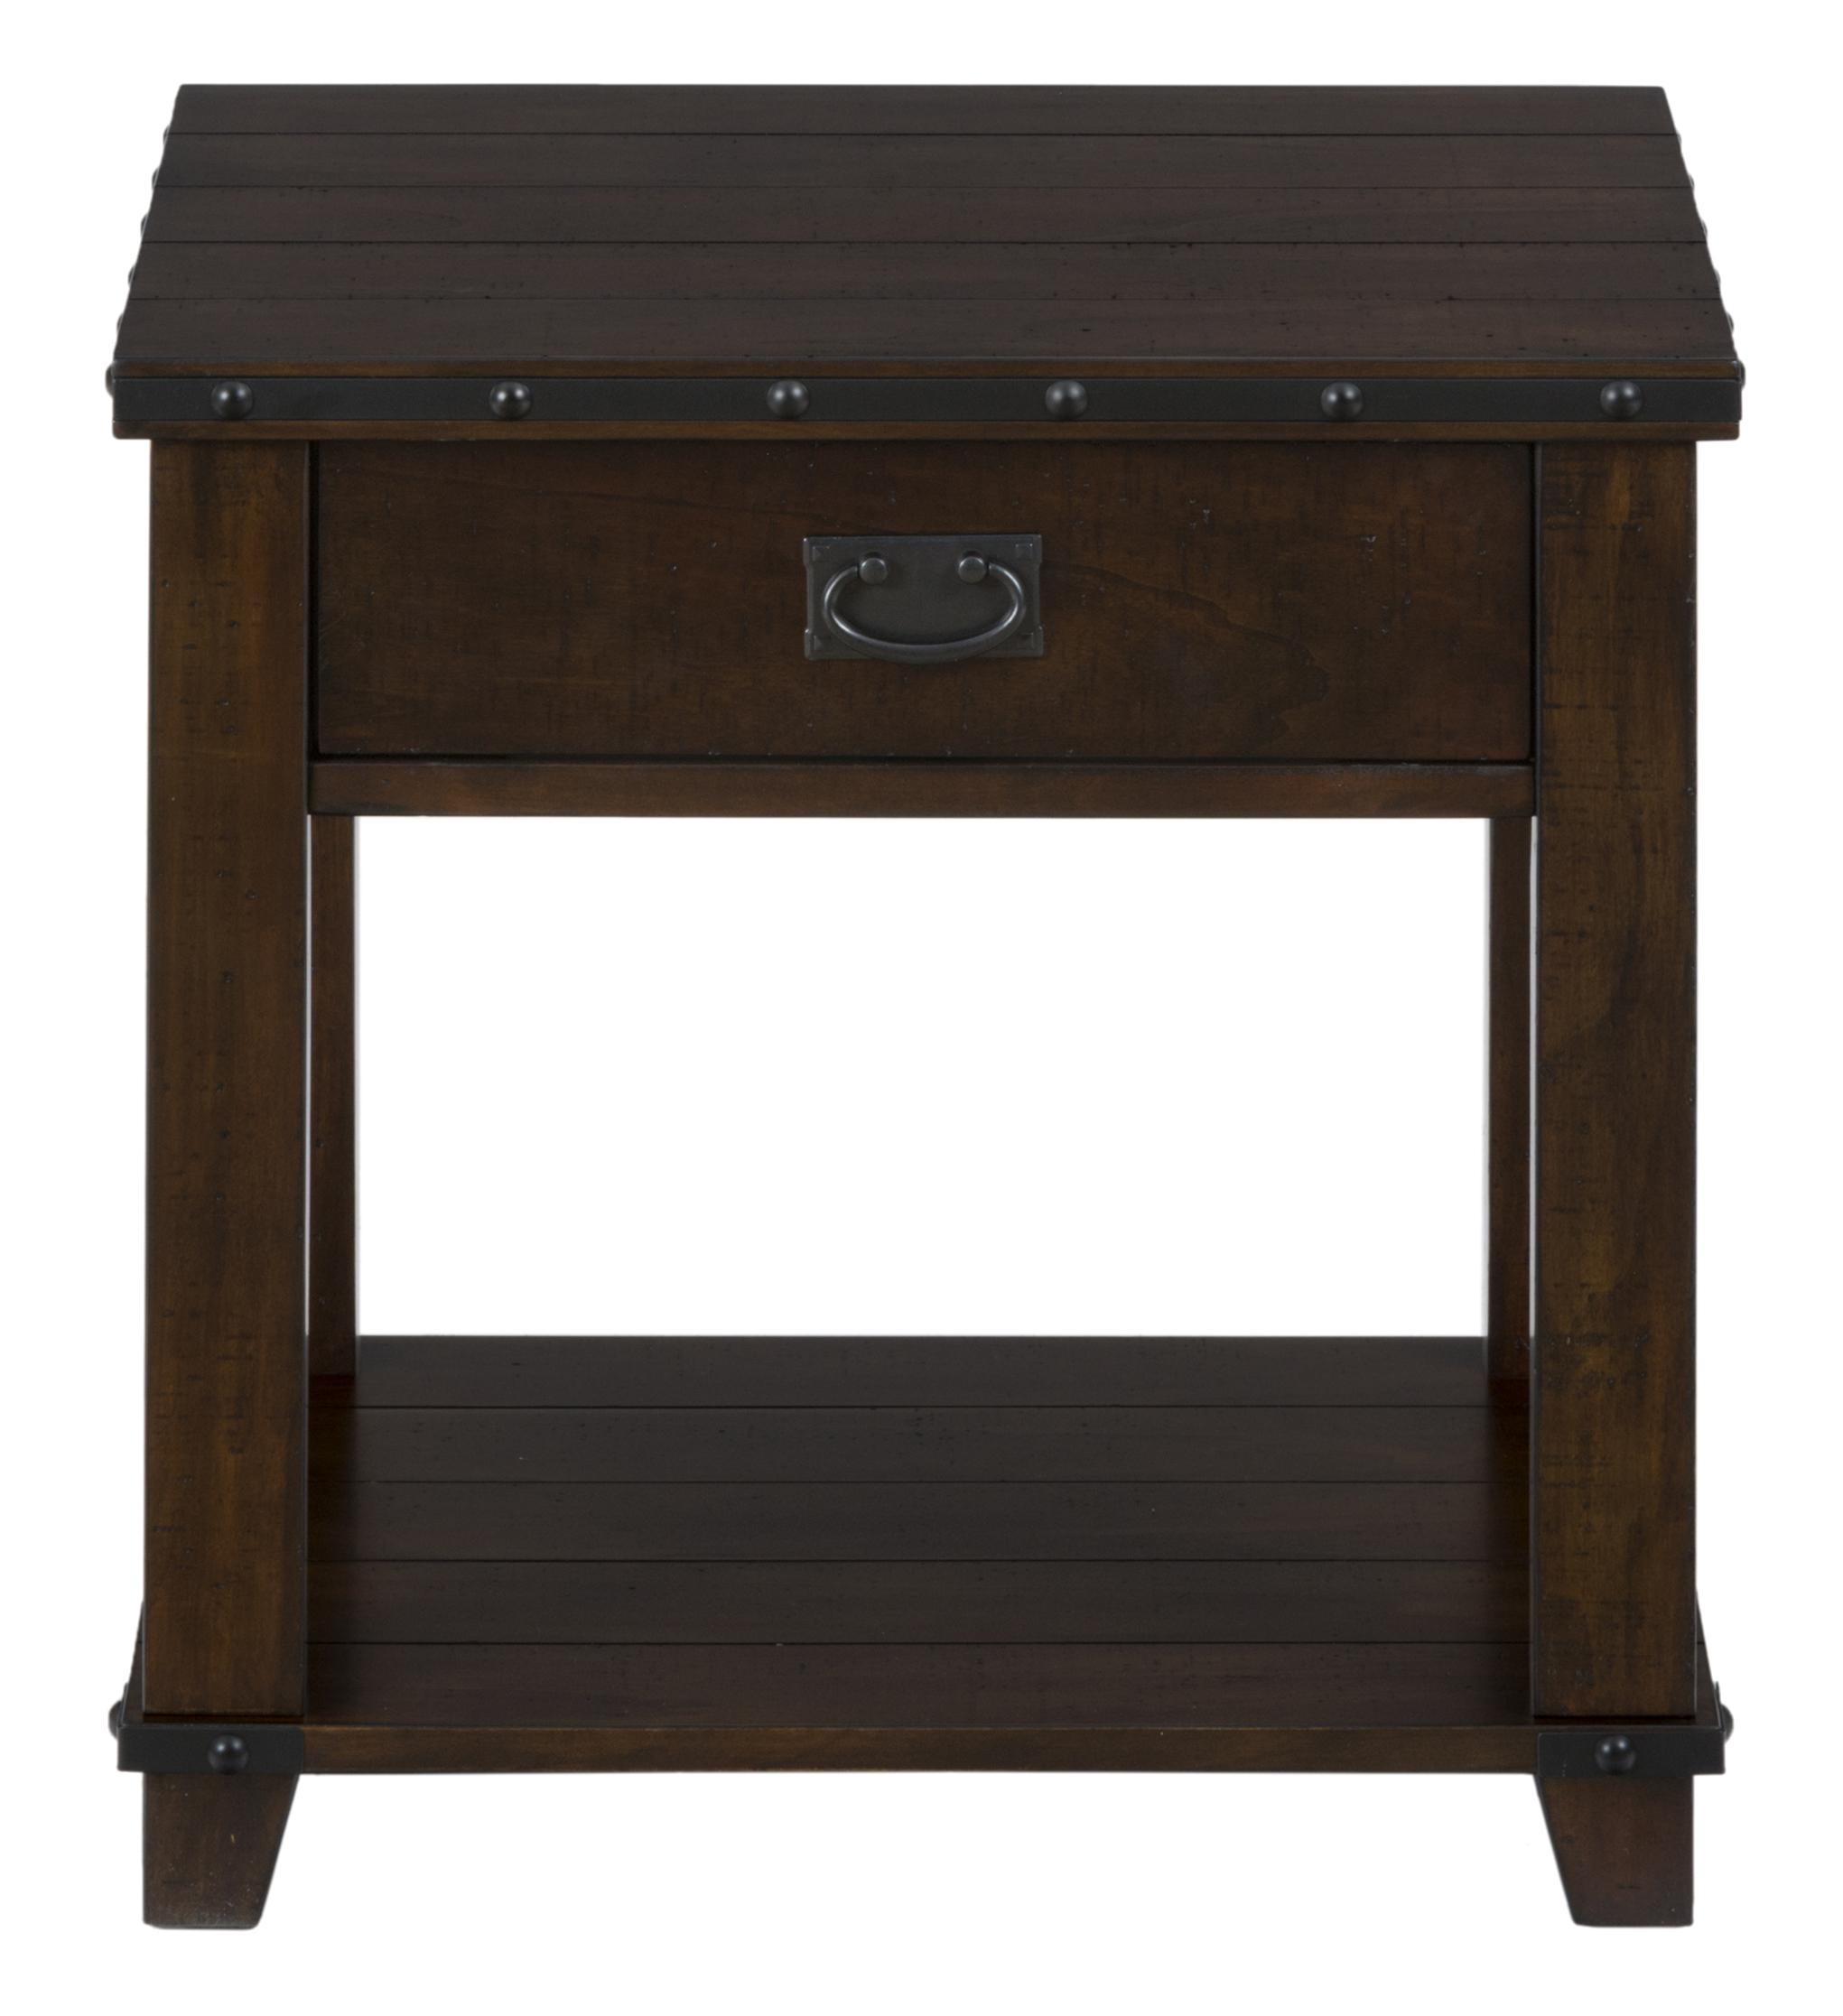 Jofran Cassidy Brown Plank Top End Table with Drawer and Shelf - Item Number: 561-3